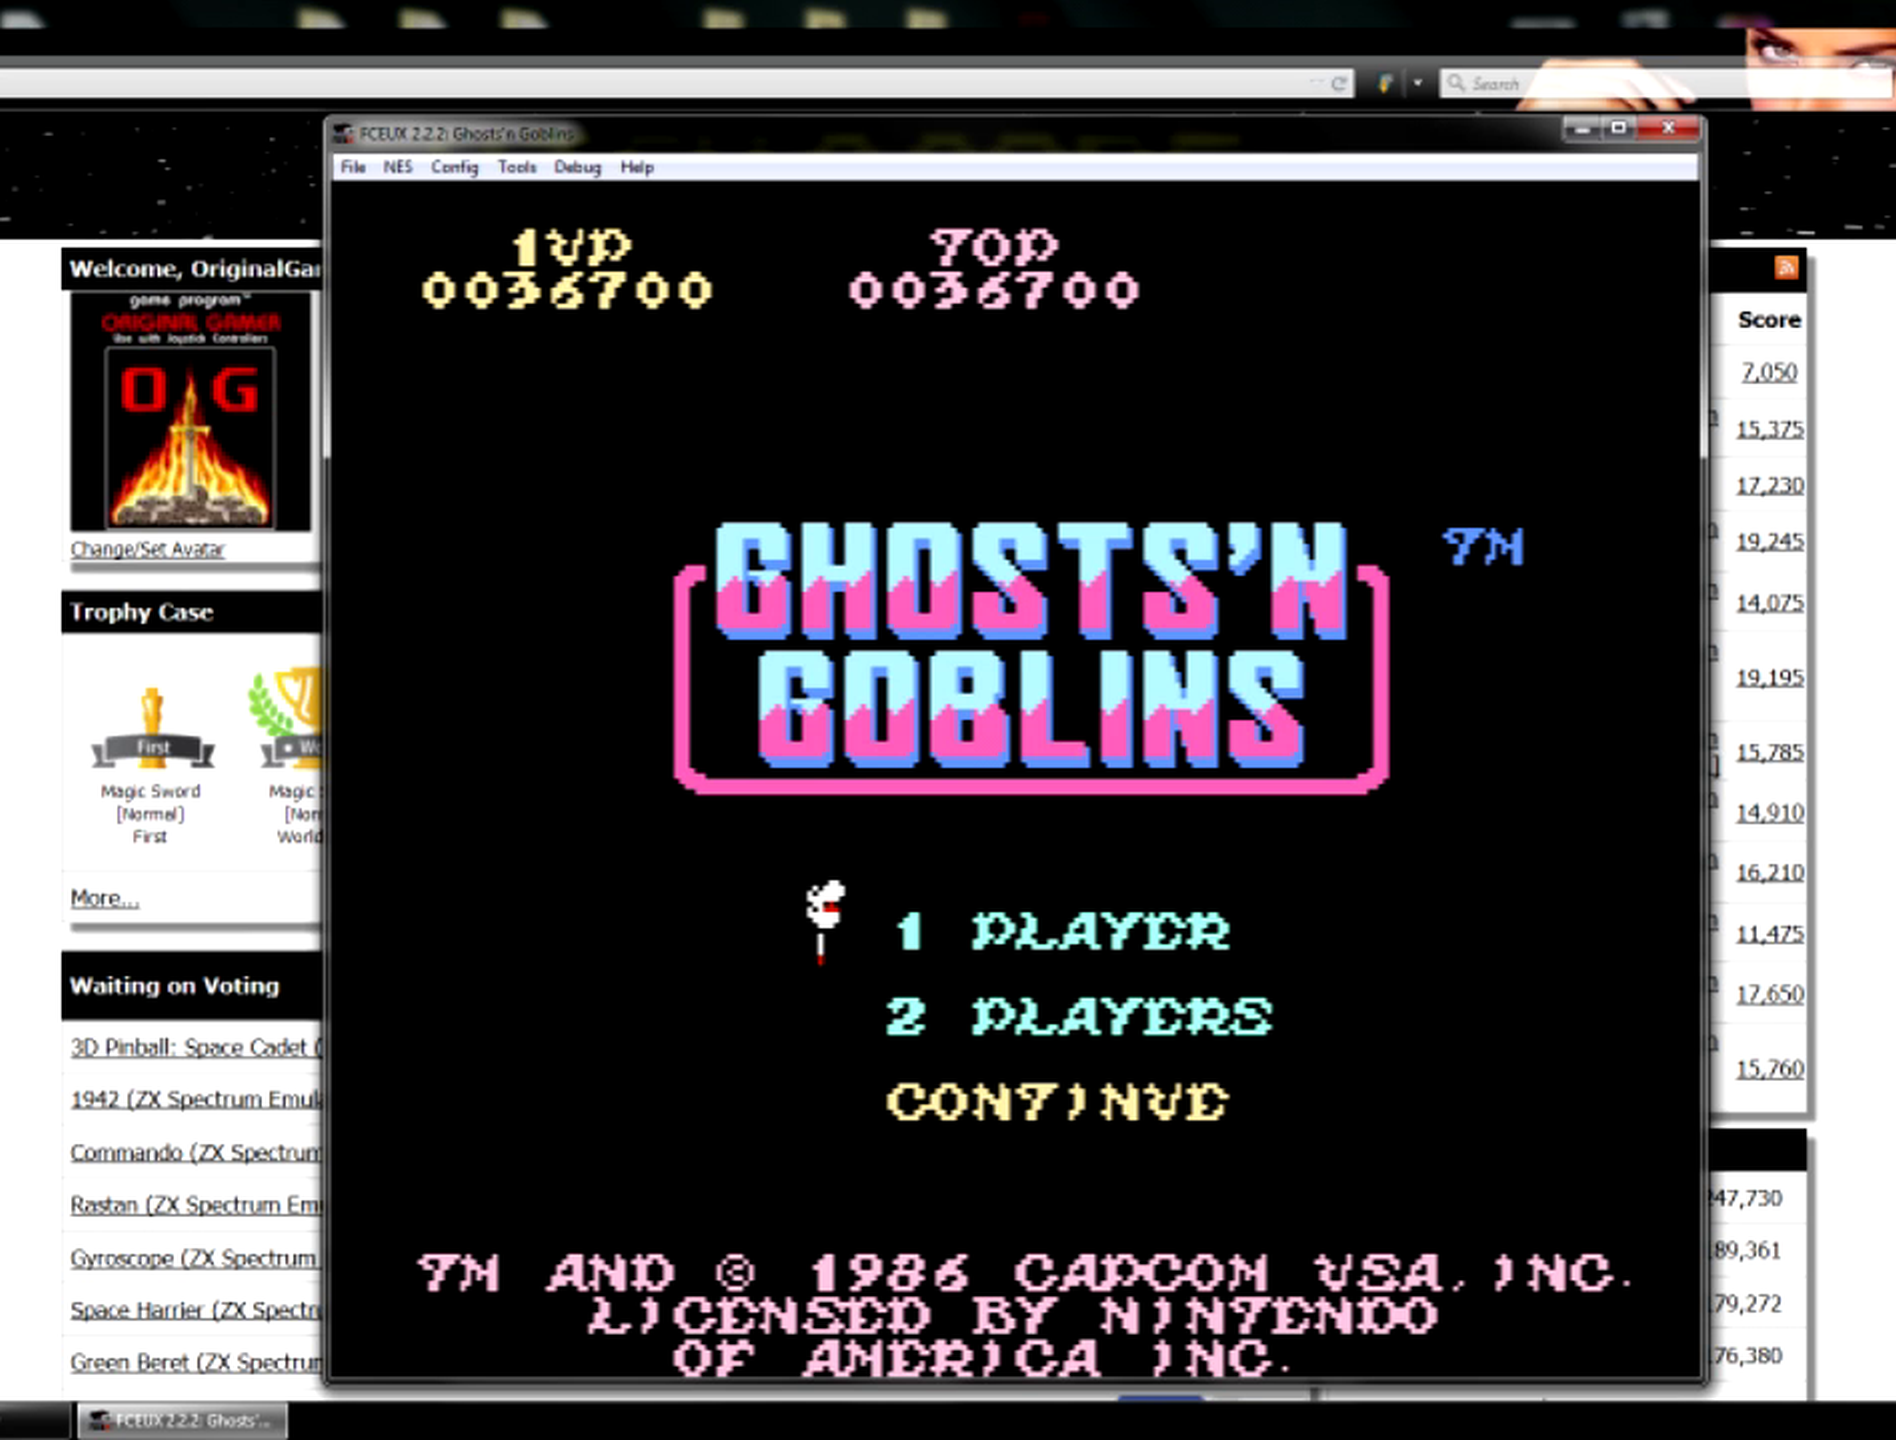 Ghosts N Goblins 36,700 points